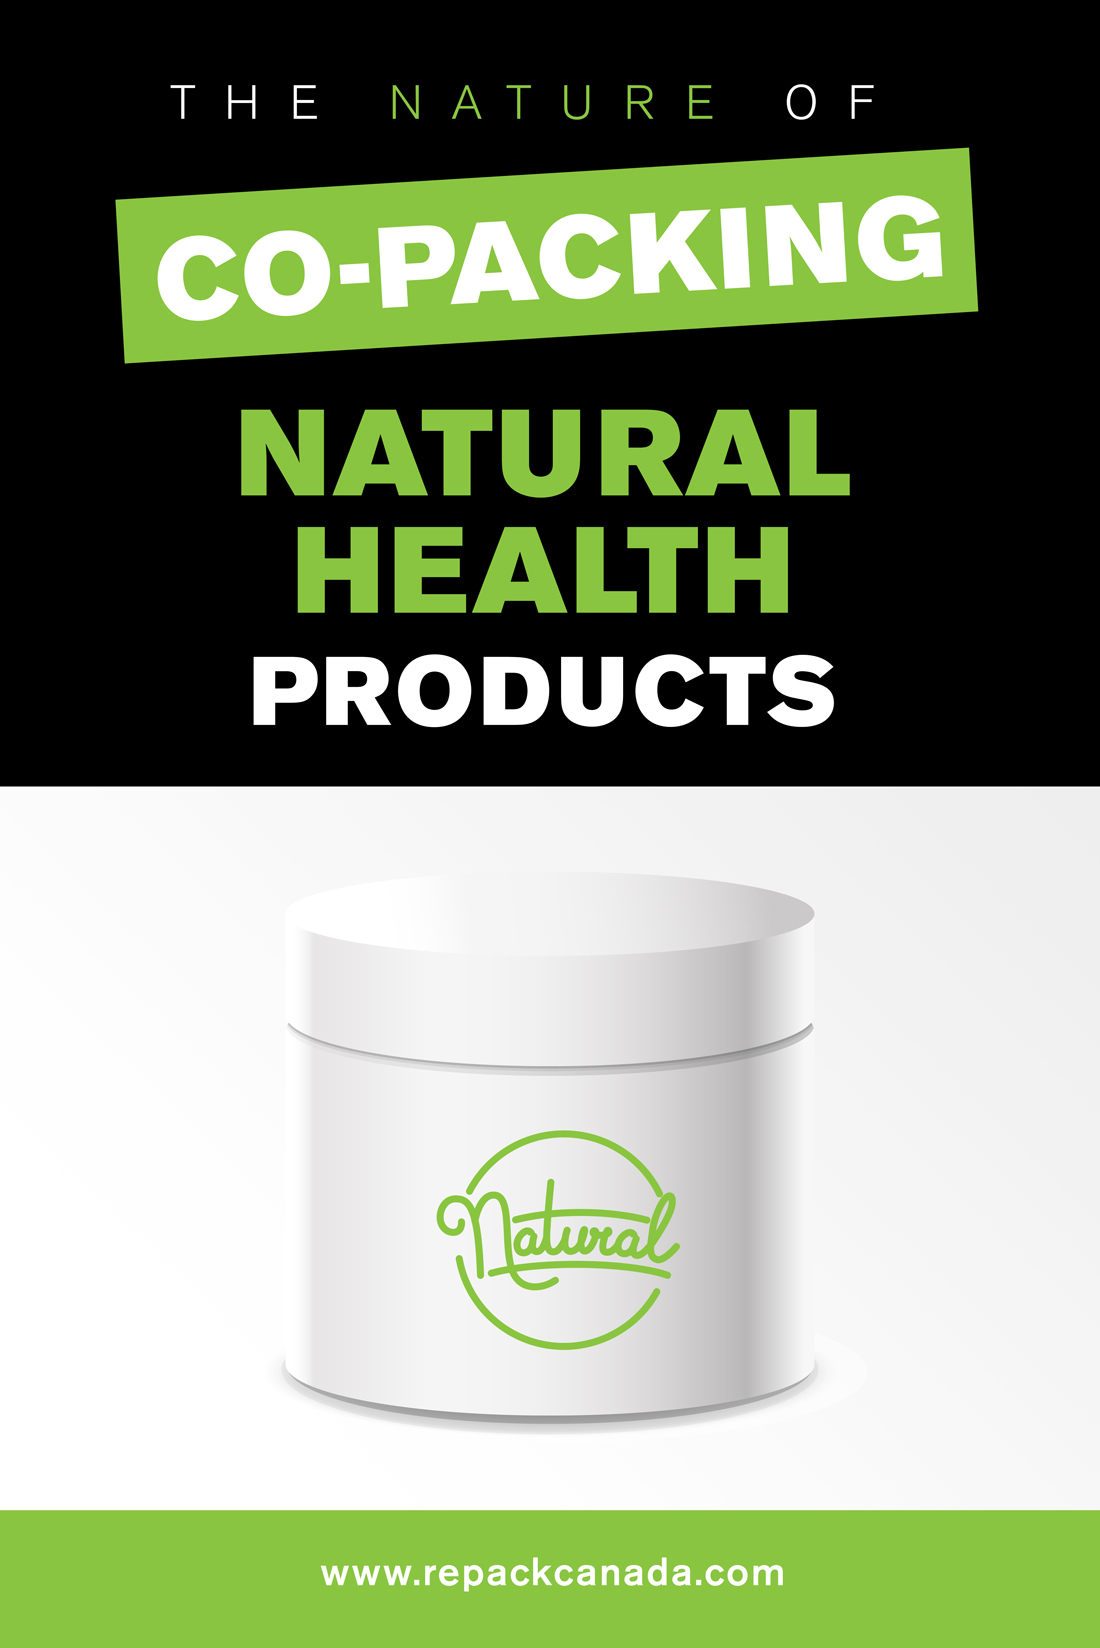 The Nature of co-packing Natural Health Products in Canada